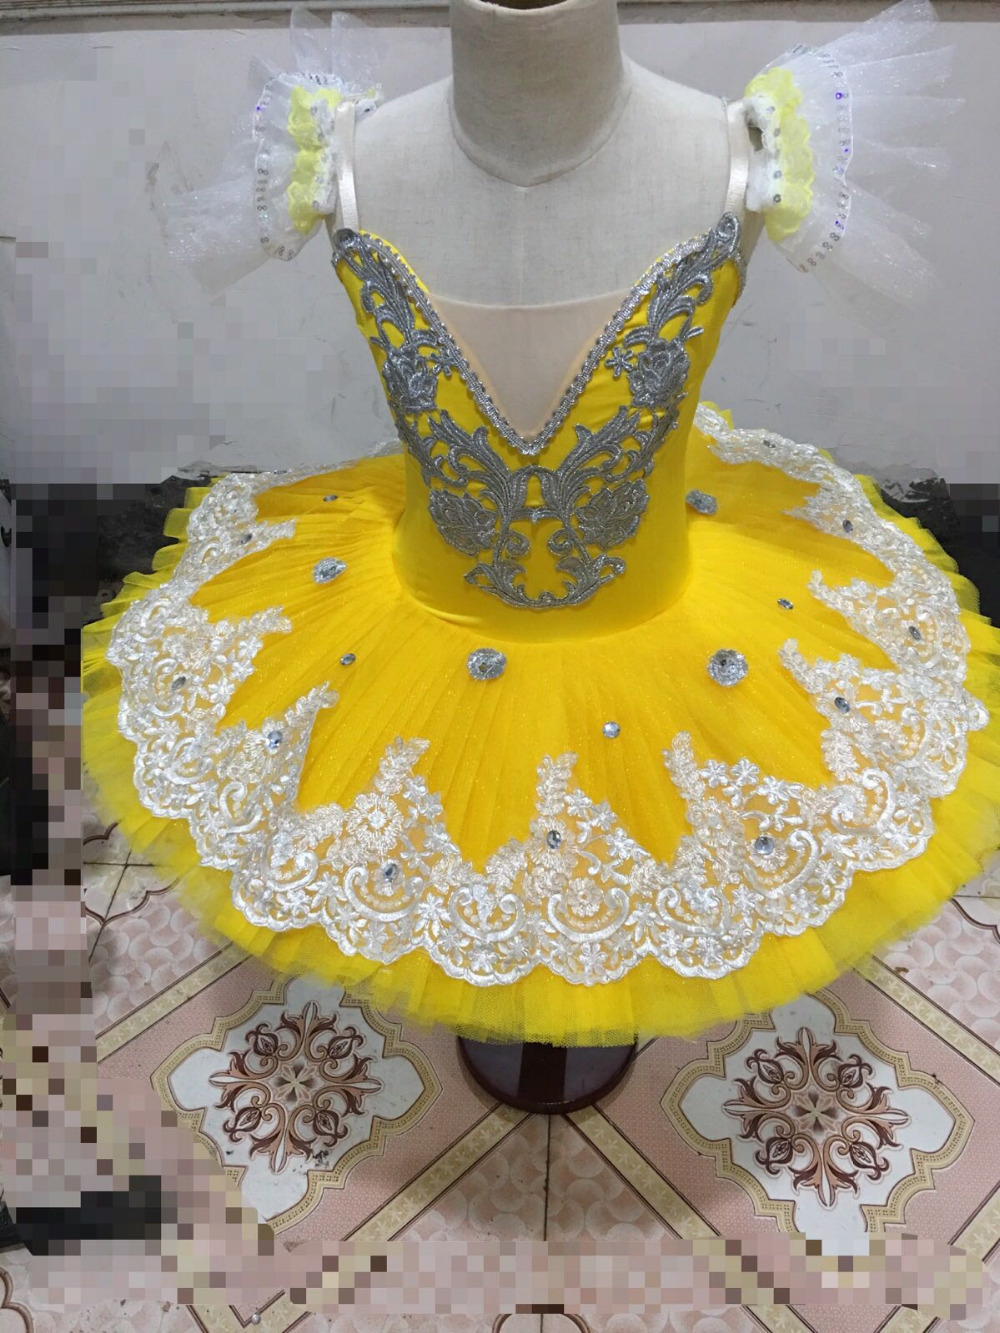 Picture of 2017 New Adult Professional Ballet Tutus Yellow Ballet Dance Cotumes Adult Costume Tutu Dance Leotard Girls Ballet Dress Women